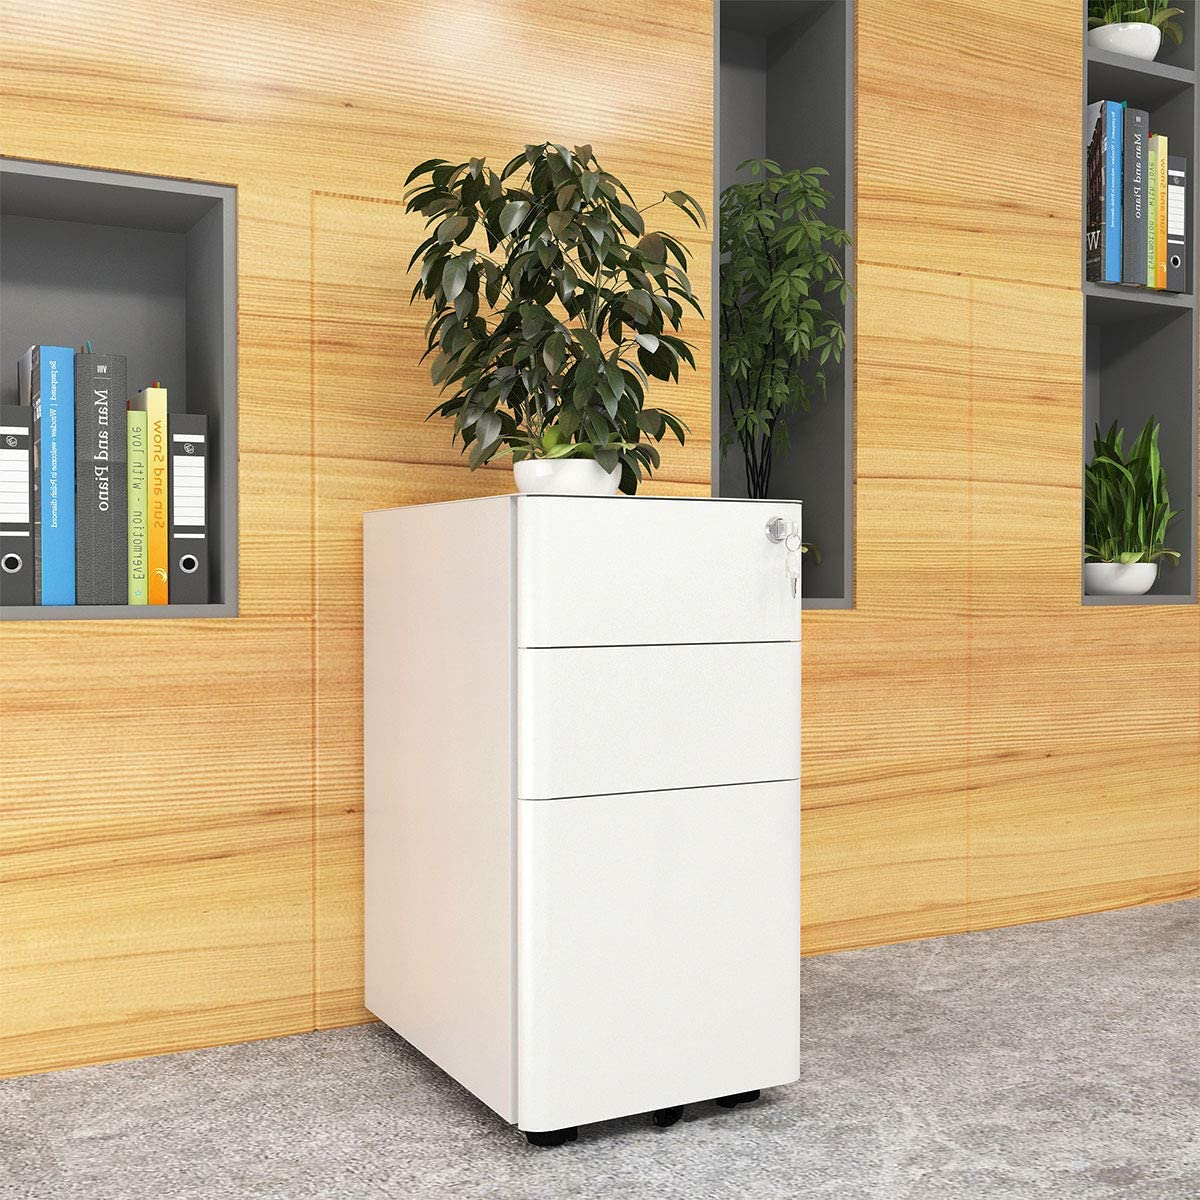 White Compact Slim Portable File Cabinet Pre-Built Office Storage Cabinet for A4//Letter//Legal YITAHOME 3-Drawer Metal Filing Cabinet Office Drawers with Keys